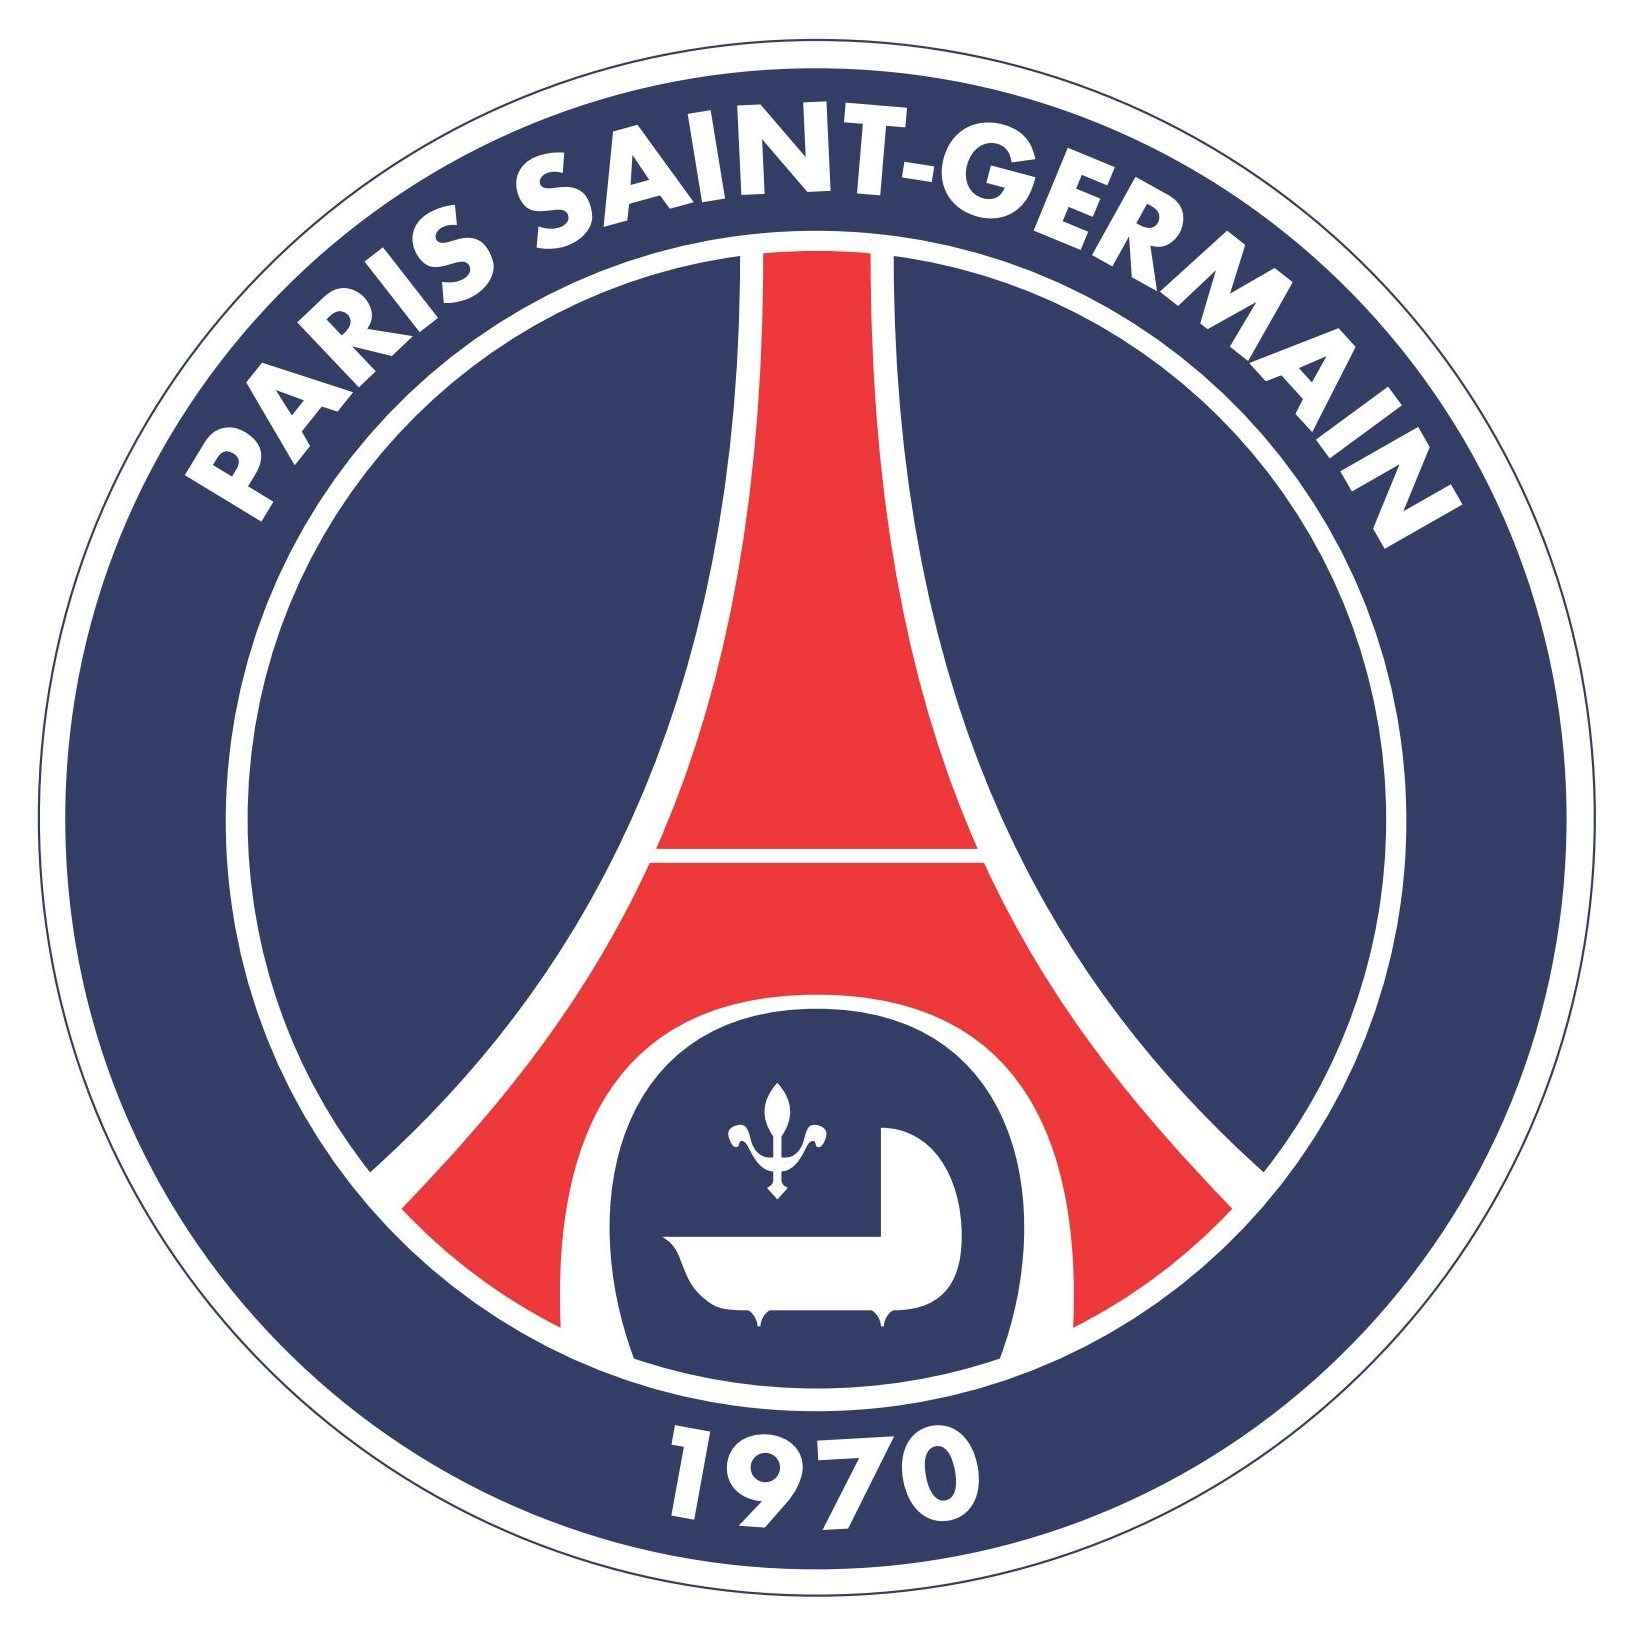 psg logo clipart 10 free Cliparts   Download images on ...